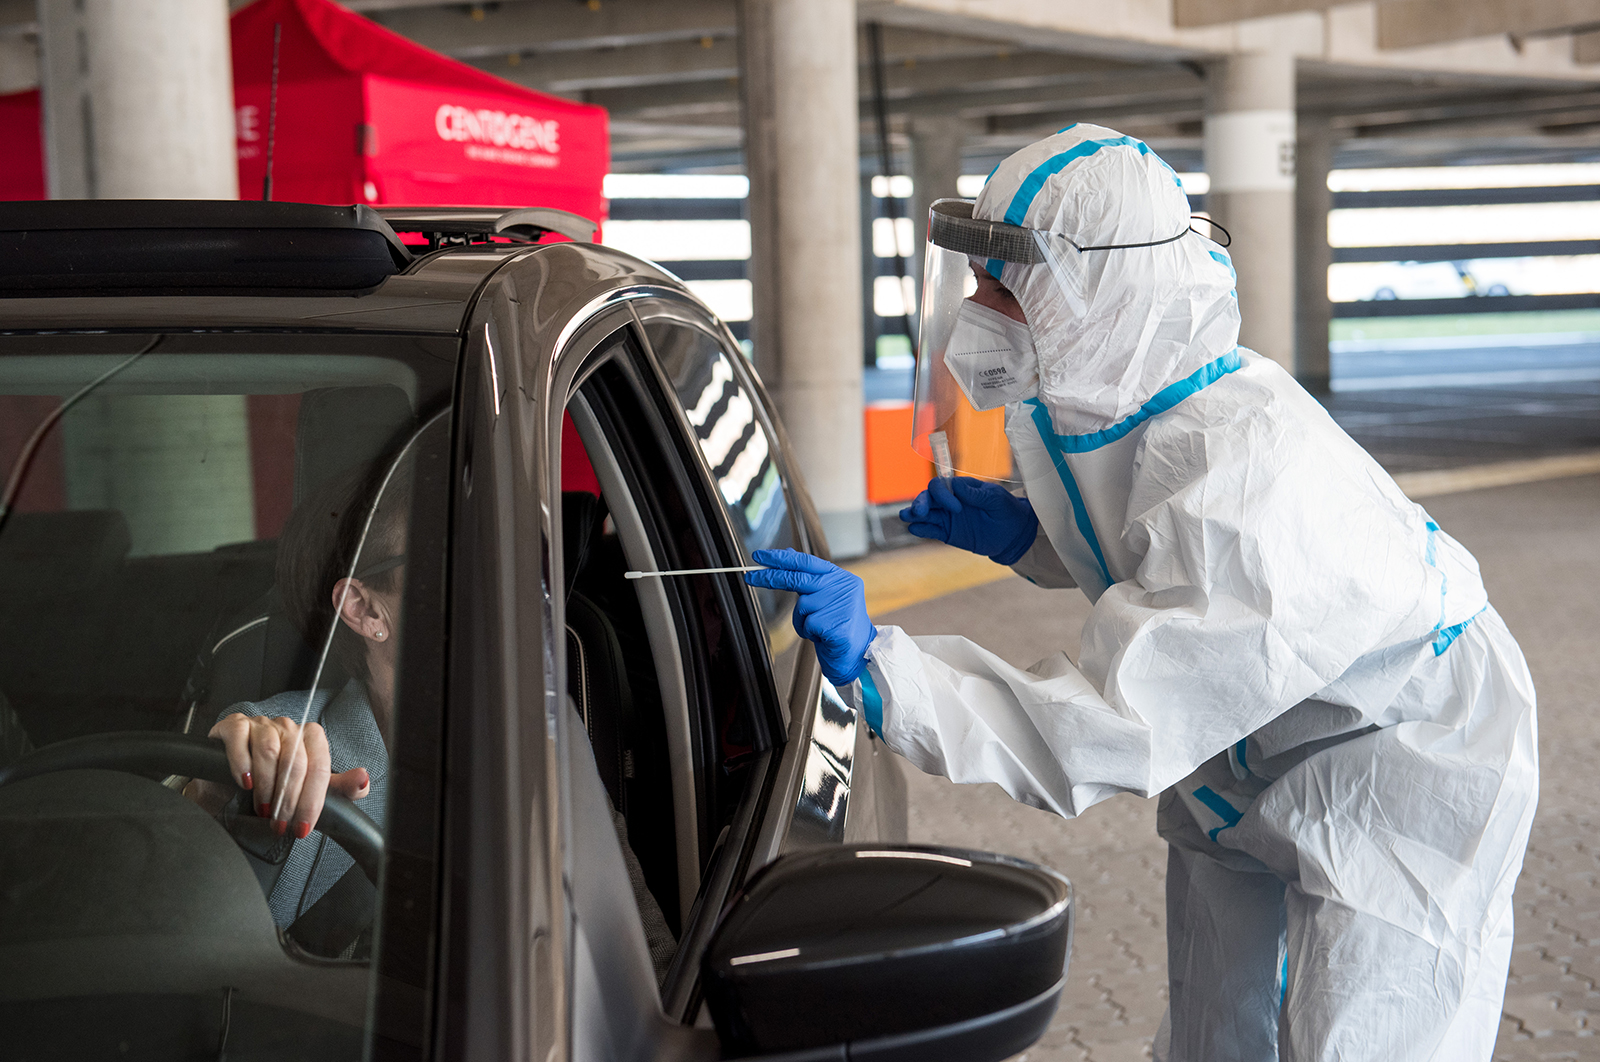 An employee takes a swab from a woman for a Covid-19 test during a trial run for a drive-through Covid-19 testing center at the airport in Hamburg, Germany, on March 31.